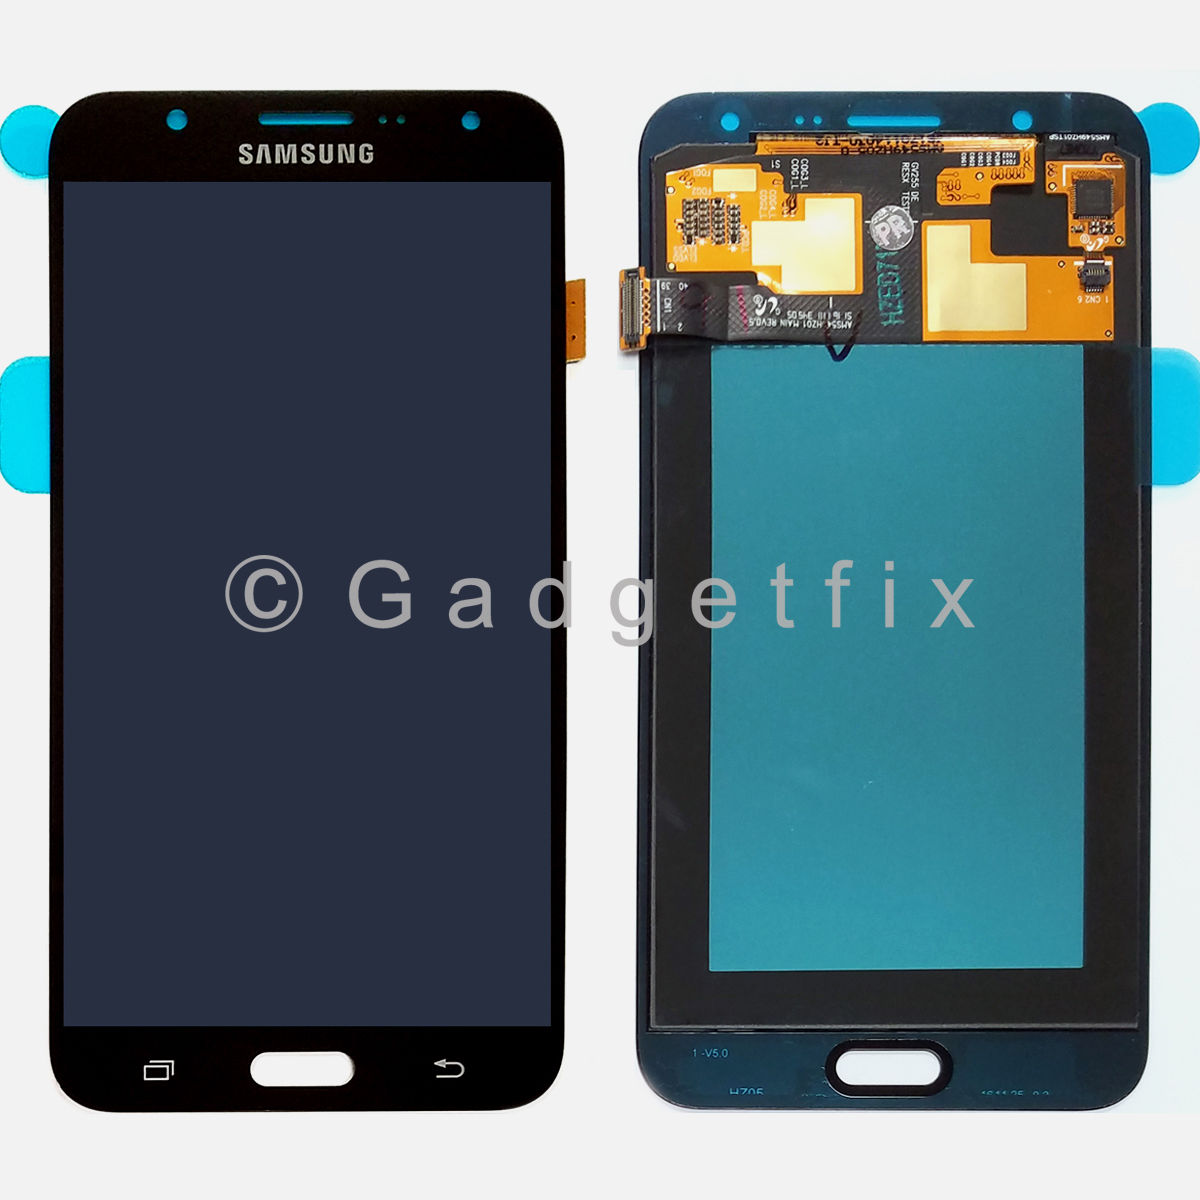 Samsung Galaxy J7 J700 J700F J700P LCD Display Touch Screen Digitizer Assembly